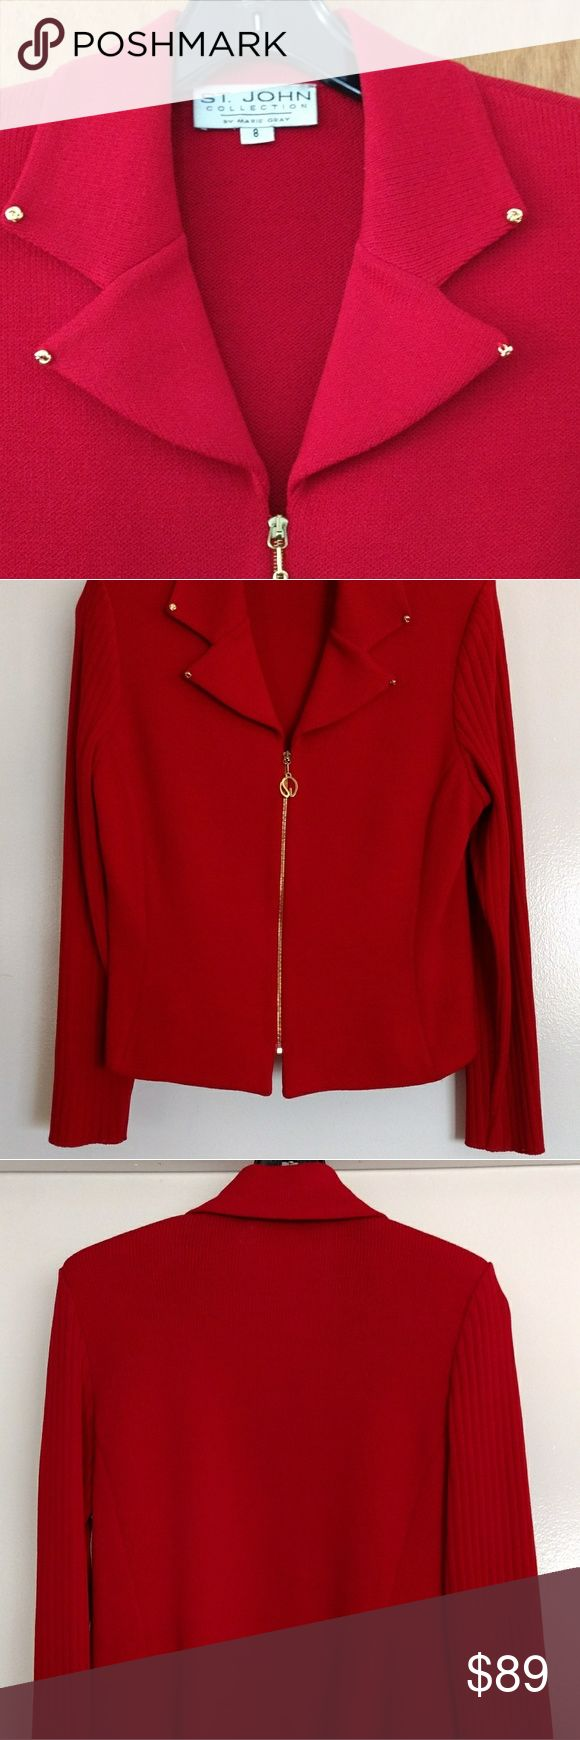 """ST JOHN sz 8 Women's Red Career Sweate Coat Jacket Incredibly beautiful red ST JOHN COLLECTION sweater jacket. Gold jewel accents zip up.? Four point collar with gold unstretched? Shoulder to hem 22"""" unstretched? All measurements are approximate? Smoke free pet free home.? St. John Sweaters Cardigans"""